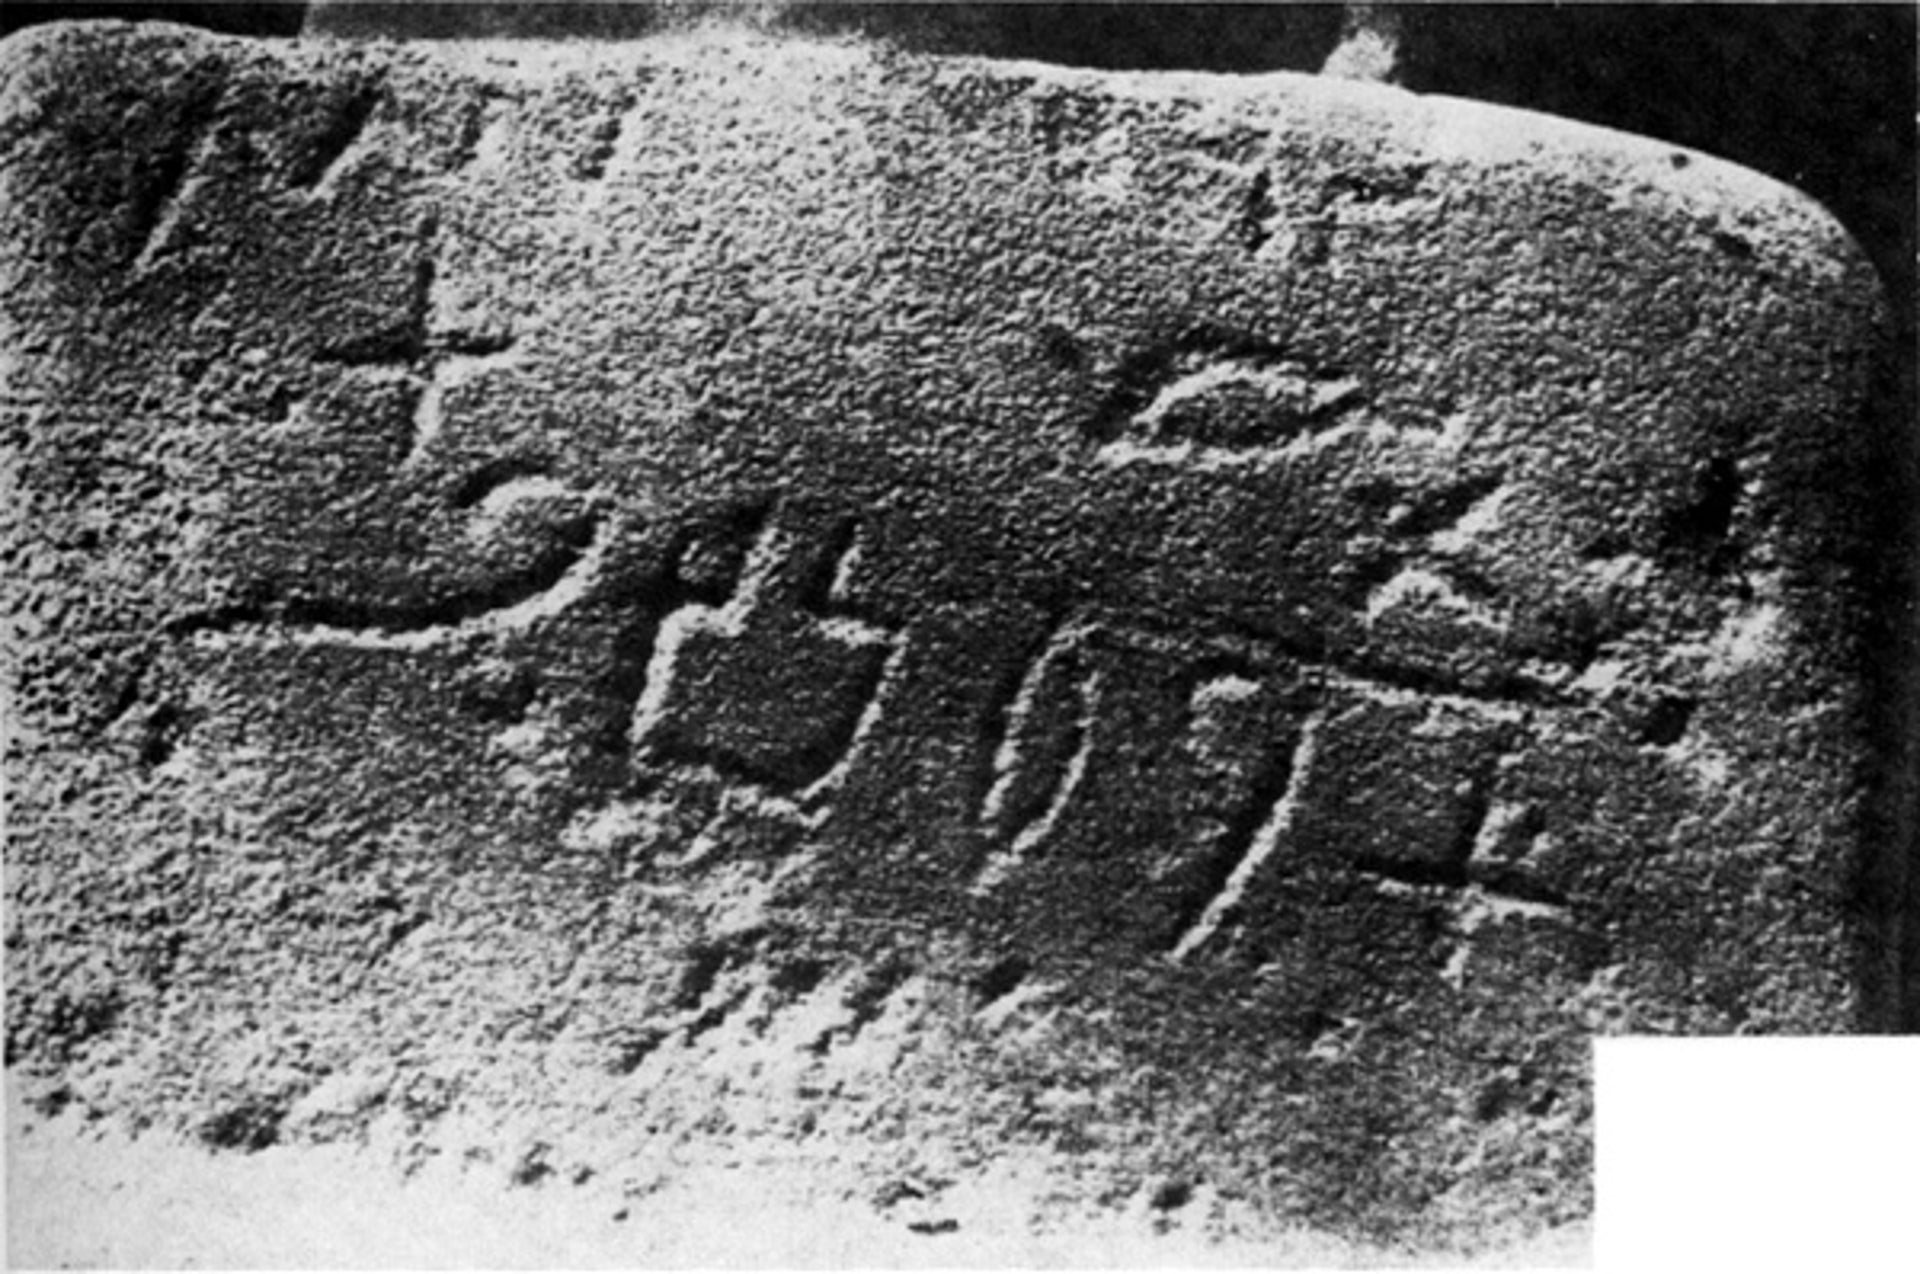 The proto-Sinatic inscription found at Serabit el-Khadem: Sir Alan Gardiner thinks it mentions the Canaanite goddess Baalat, wife of Baal, who some think is the source of Hathor.